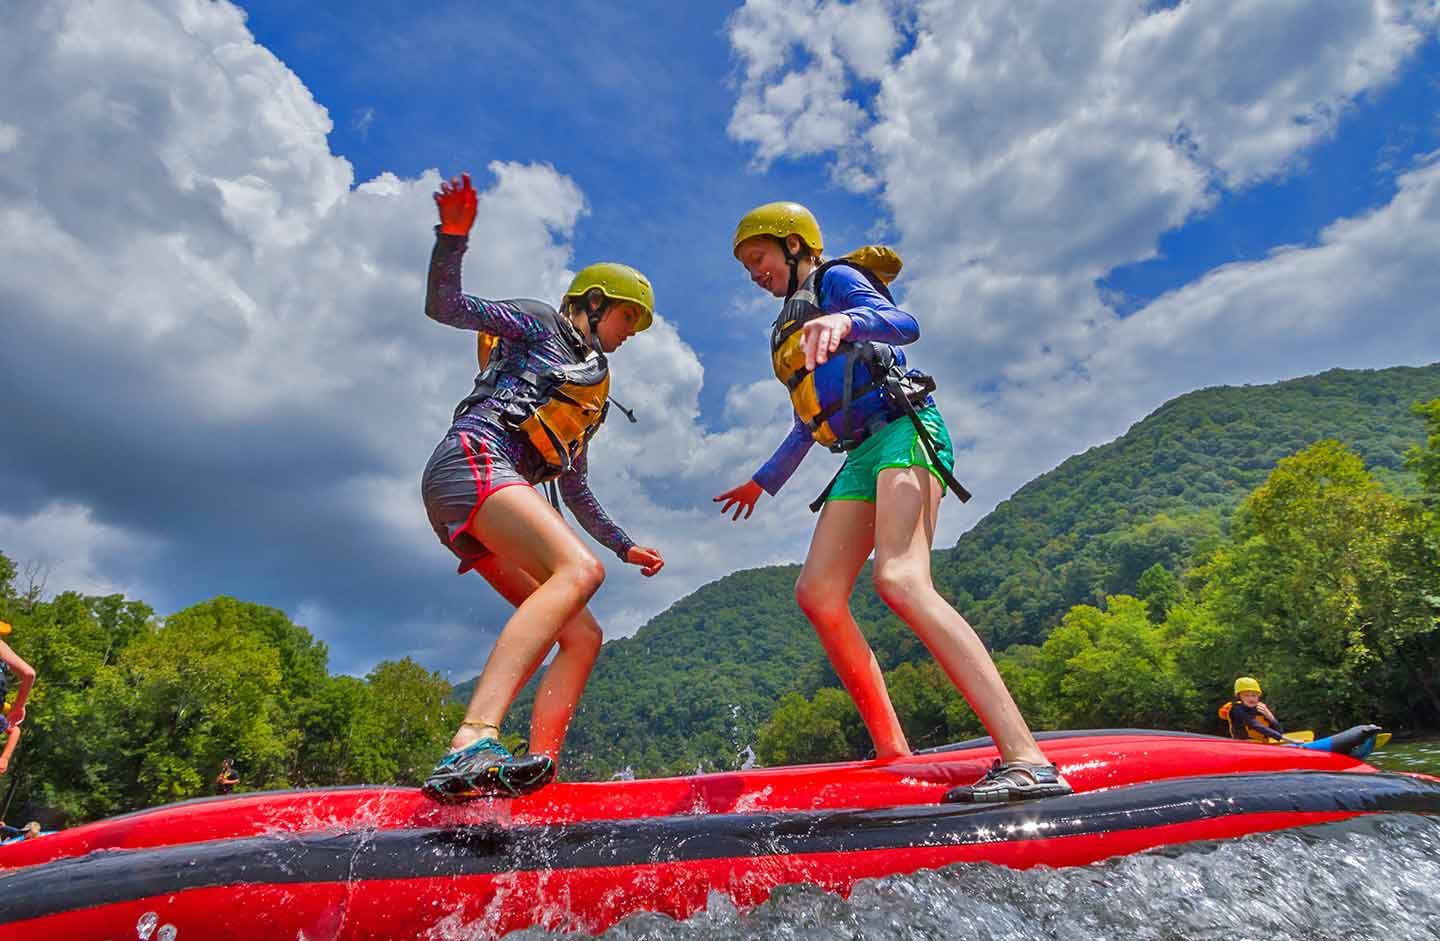 Two young girls play on the upper new river a popular west virginia whitewater rafting kid-friendly rafting trip.